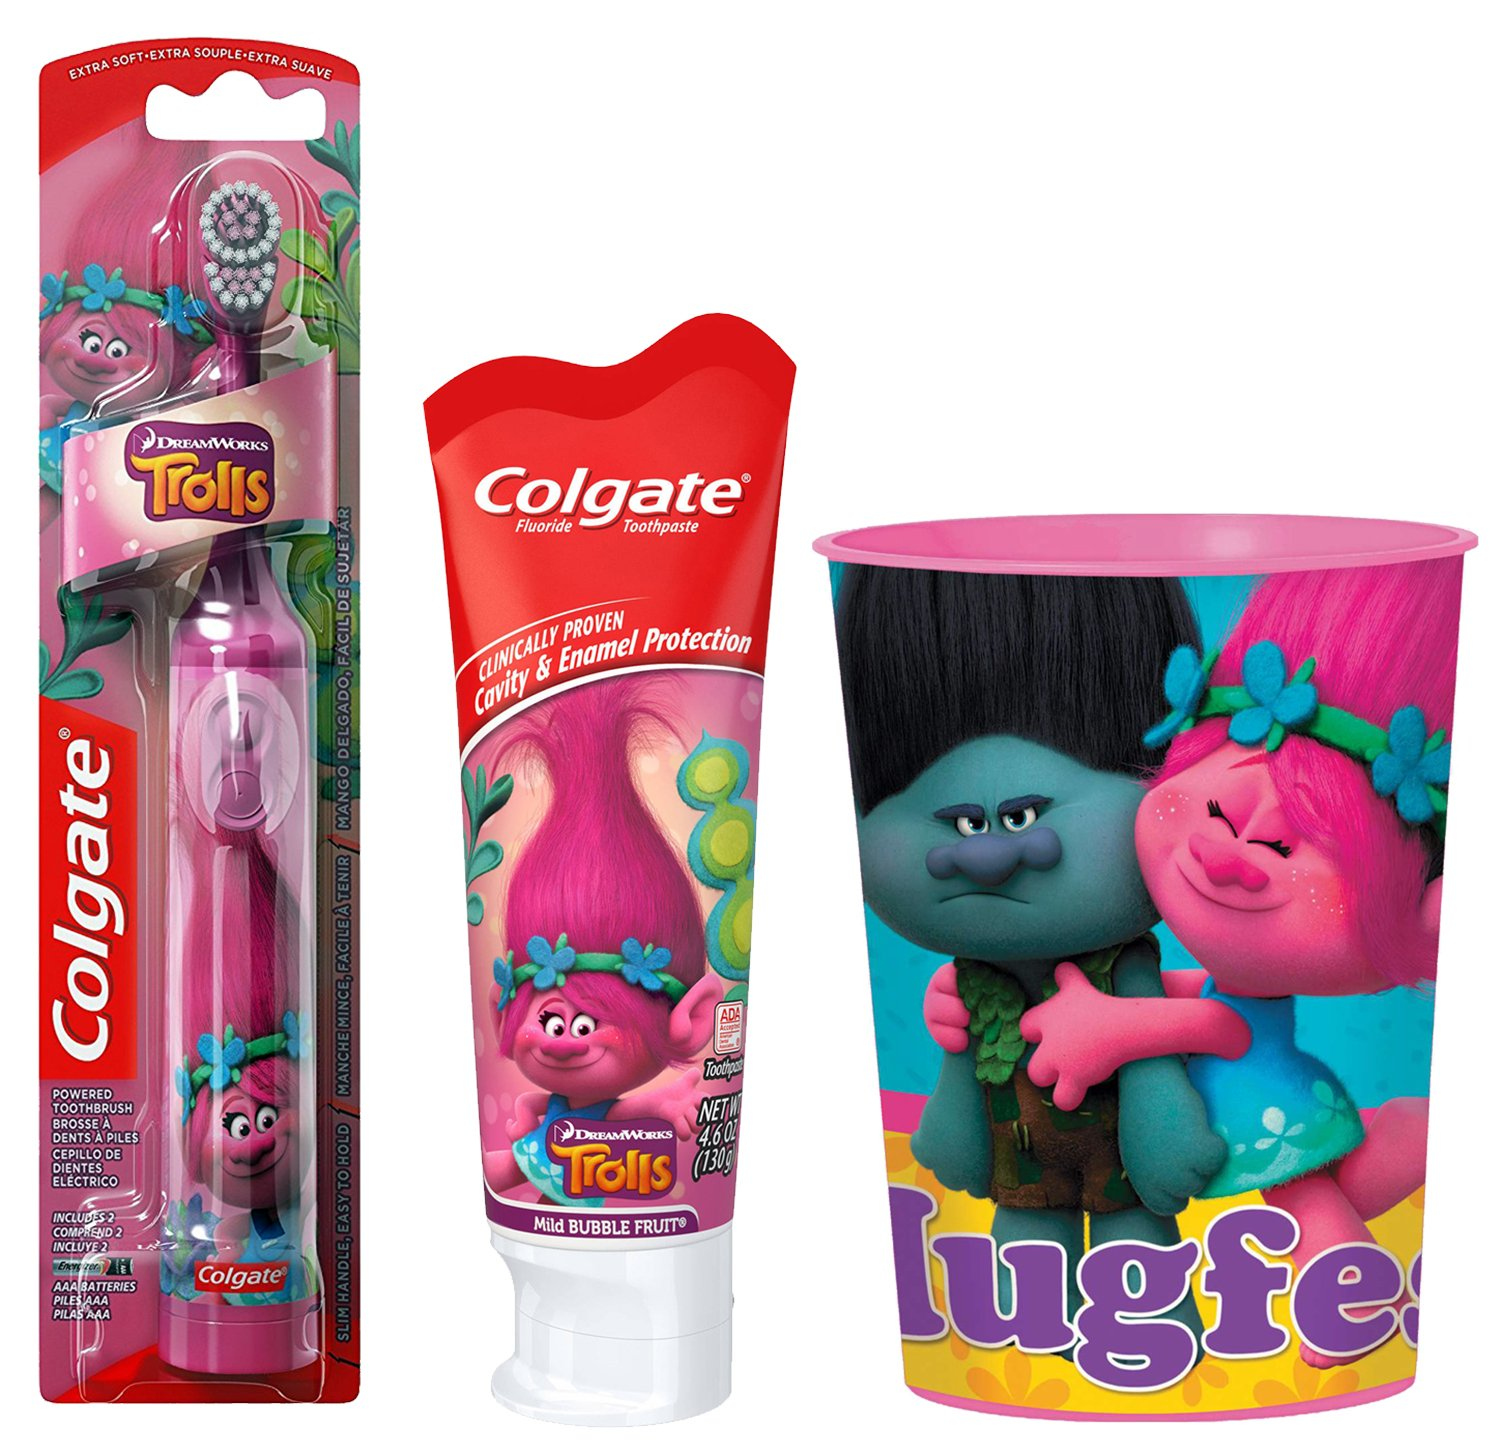 Amazon.com: Trolls Poppy Kids Toothbrush Bundle: 3 Items - Powered Toothbrush, Mild Bubble Fruit Toothpaste, Kids Rinse Cup: Beauty